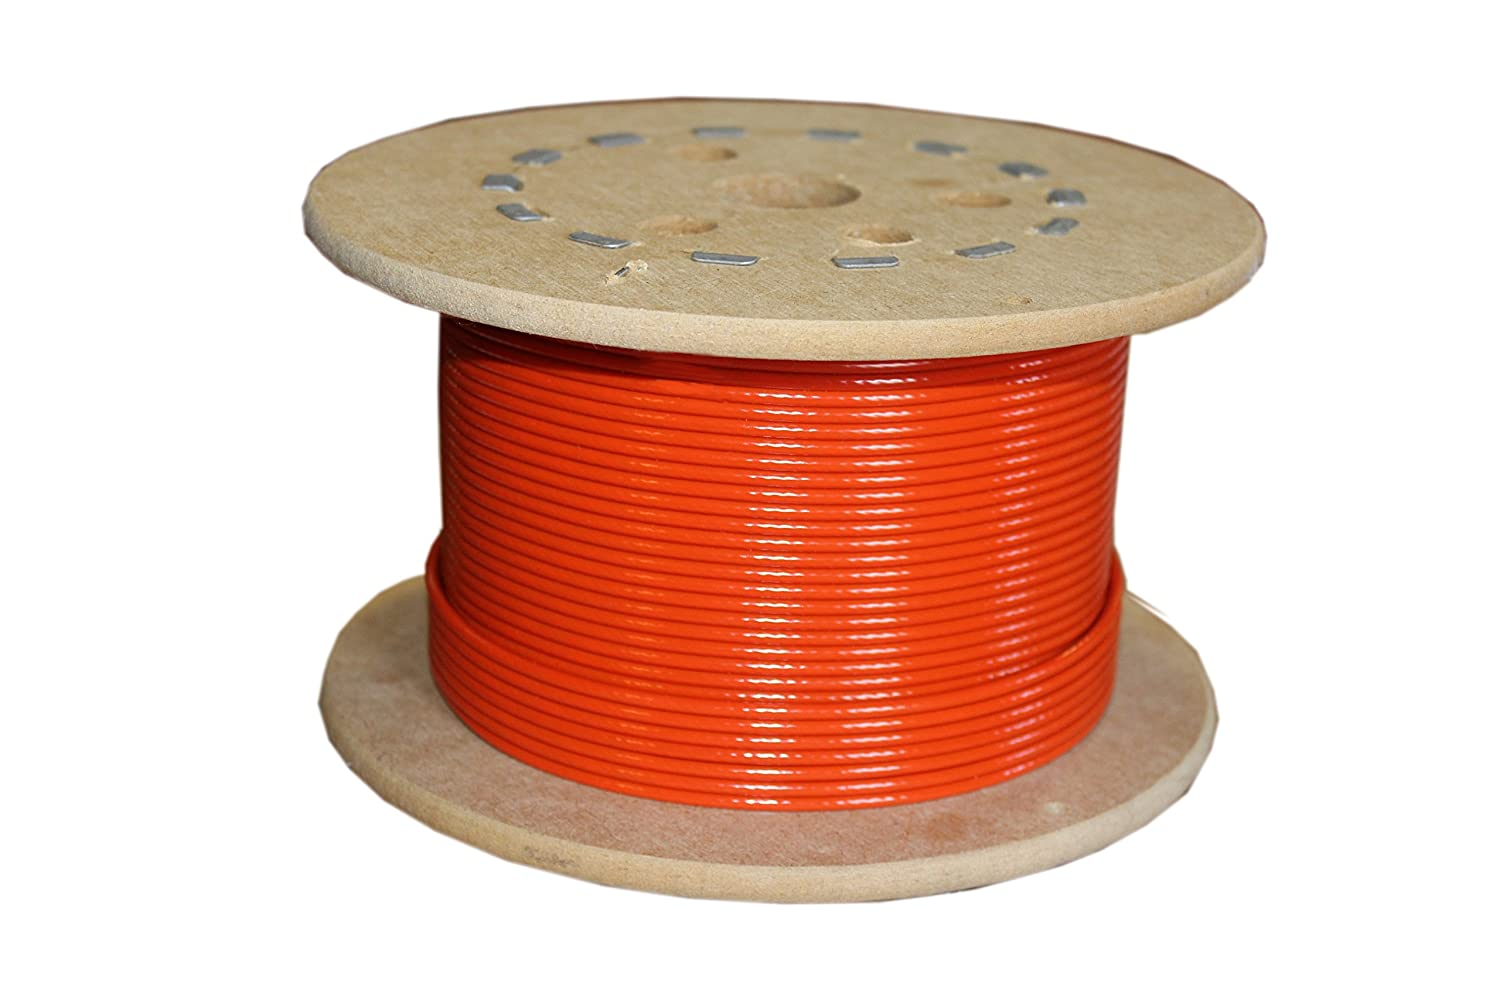 Nylon Coated 920 lbs Breaking Strength 3//32 Bare OD 25 Length Loos Galvanized Steel Wire Rope 1//8 Coated OD Orange 7x7 Strand Core